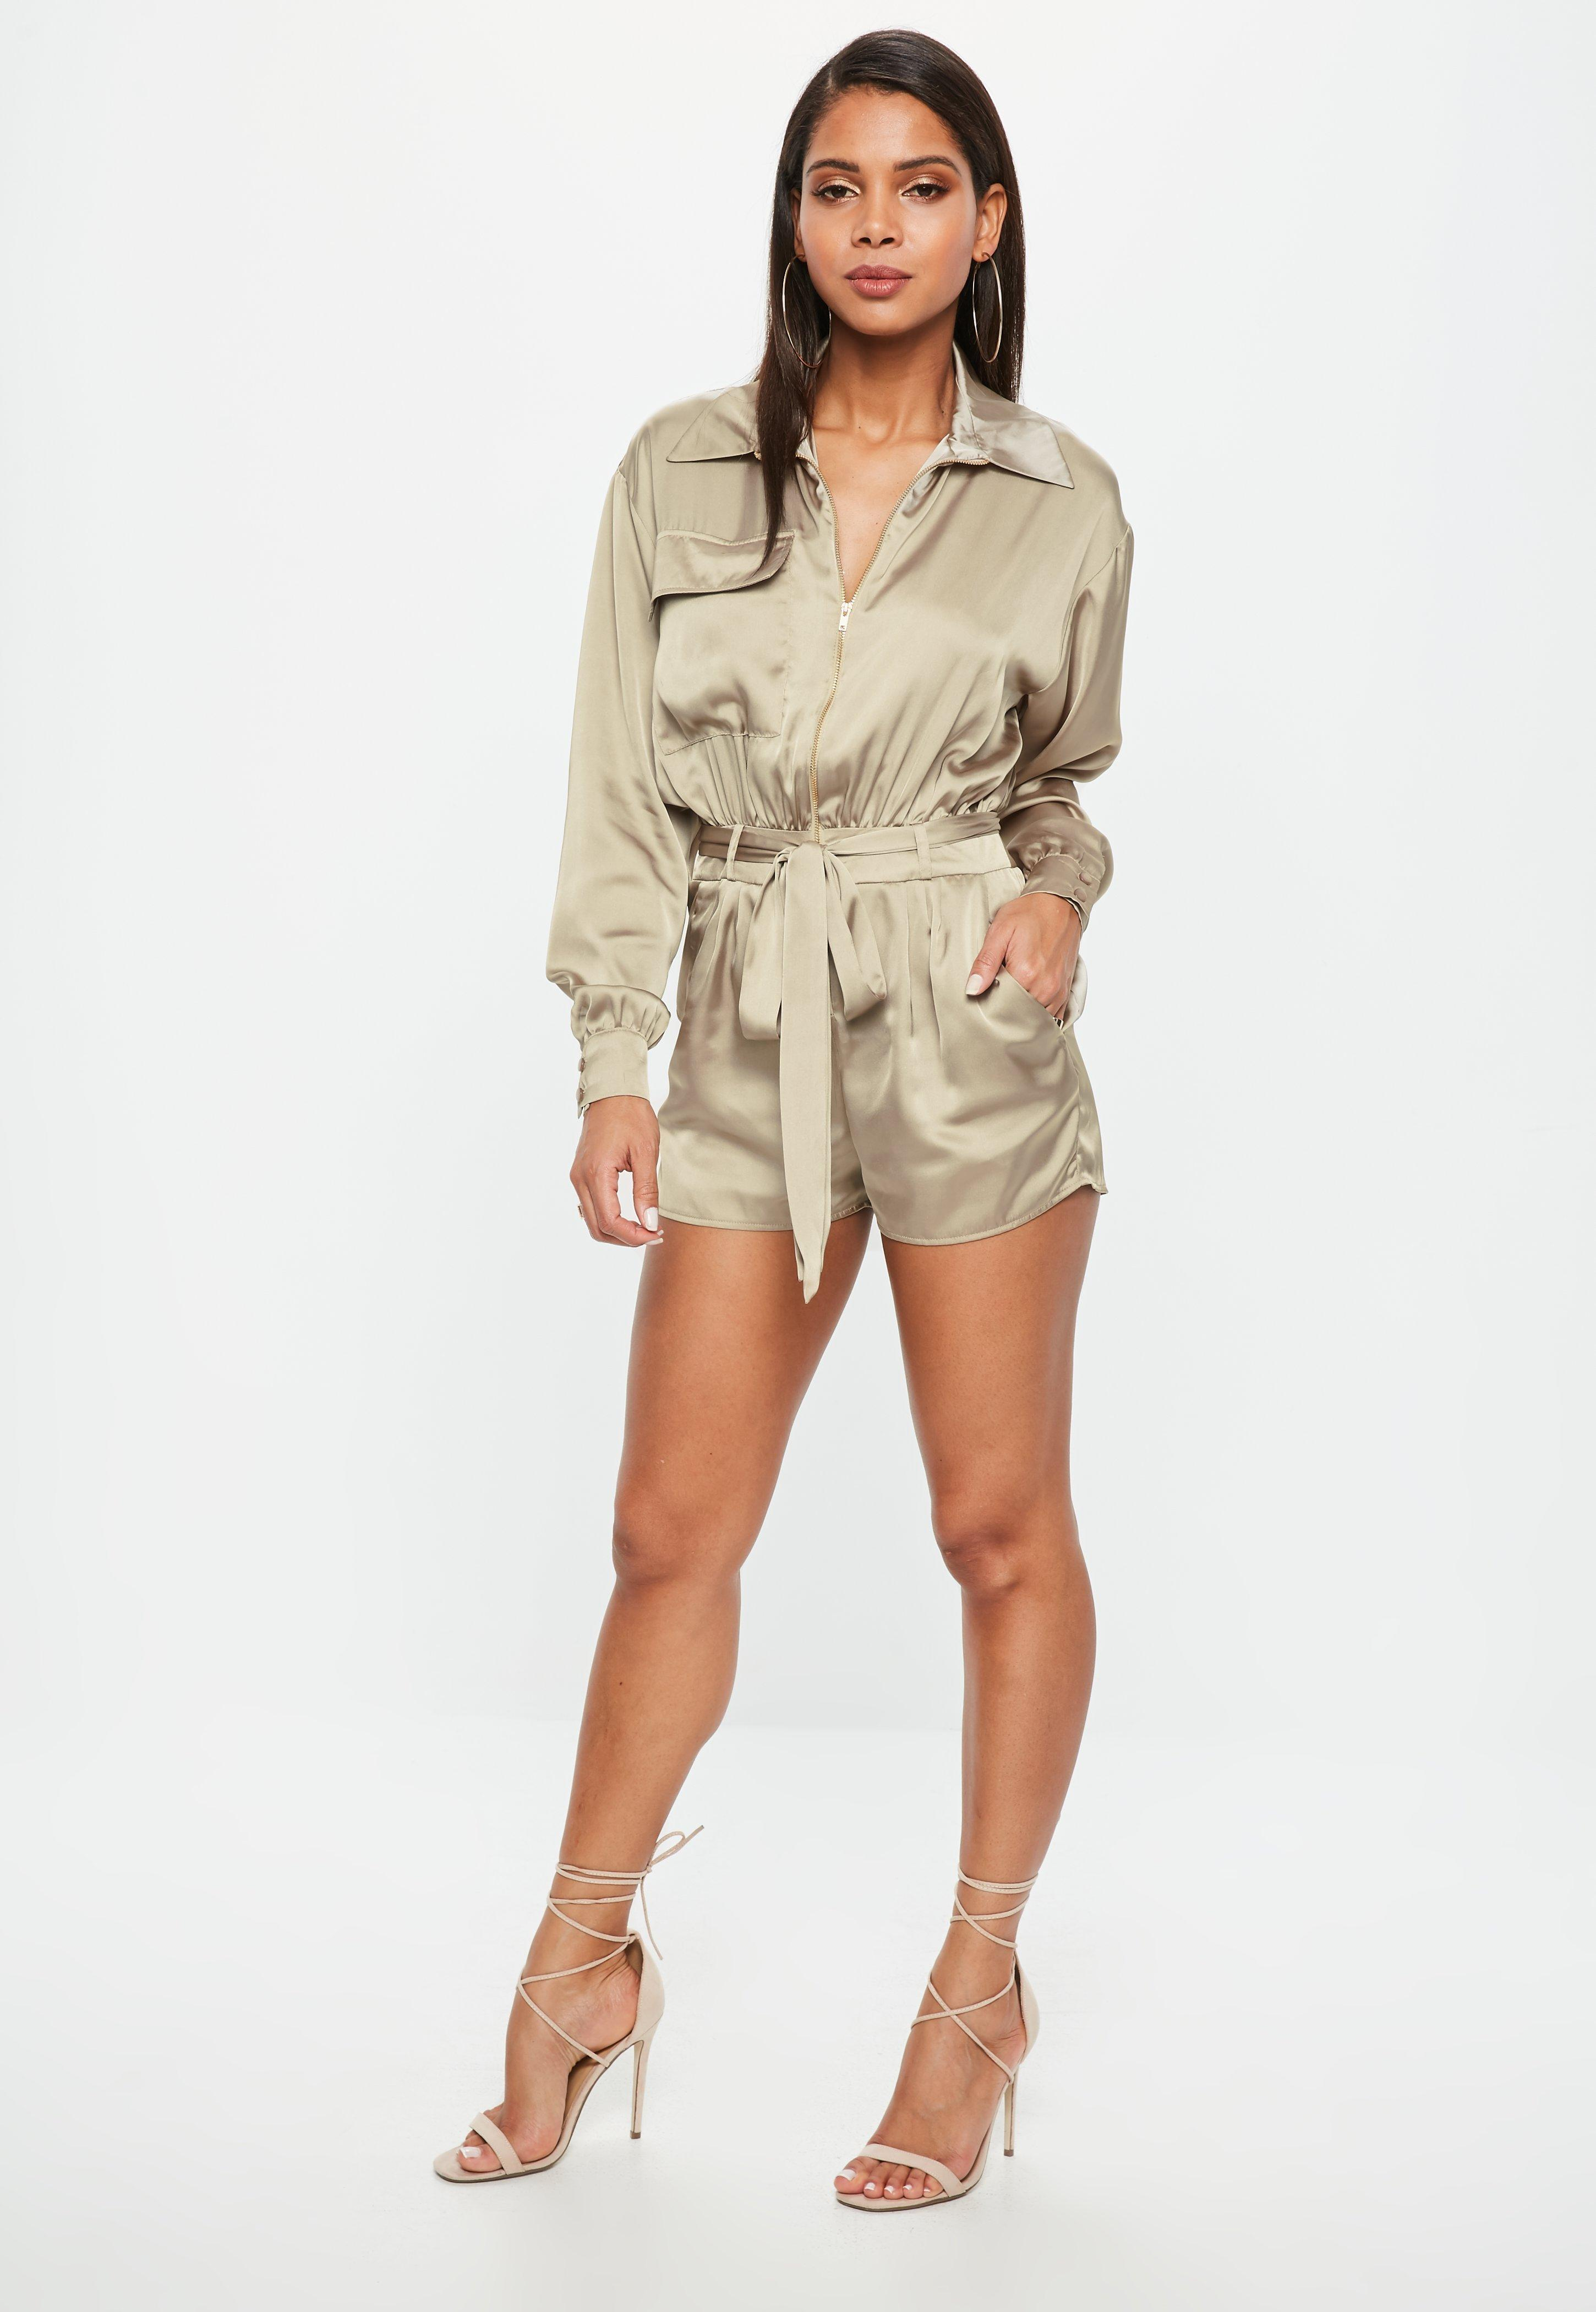 b3624a93c31f Missguided Khaki Satin Long Sleeve Utility Belted Playsuit in ...